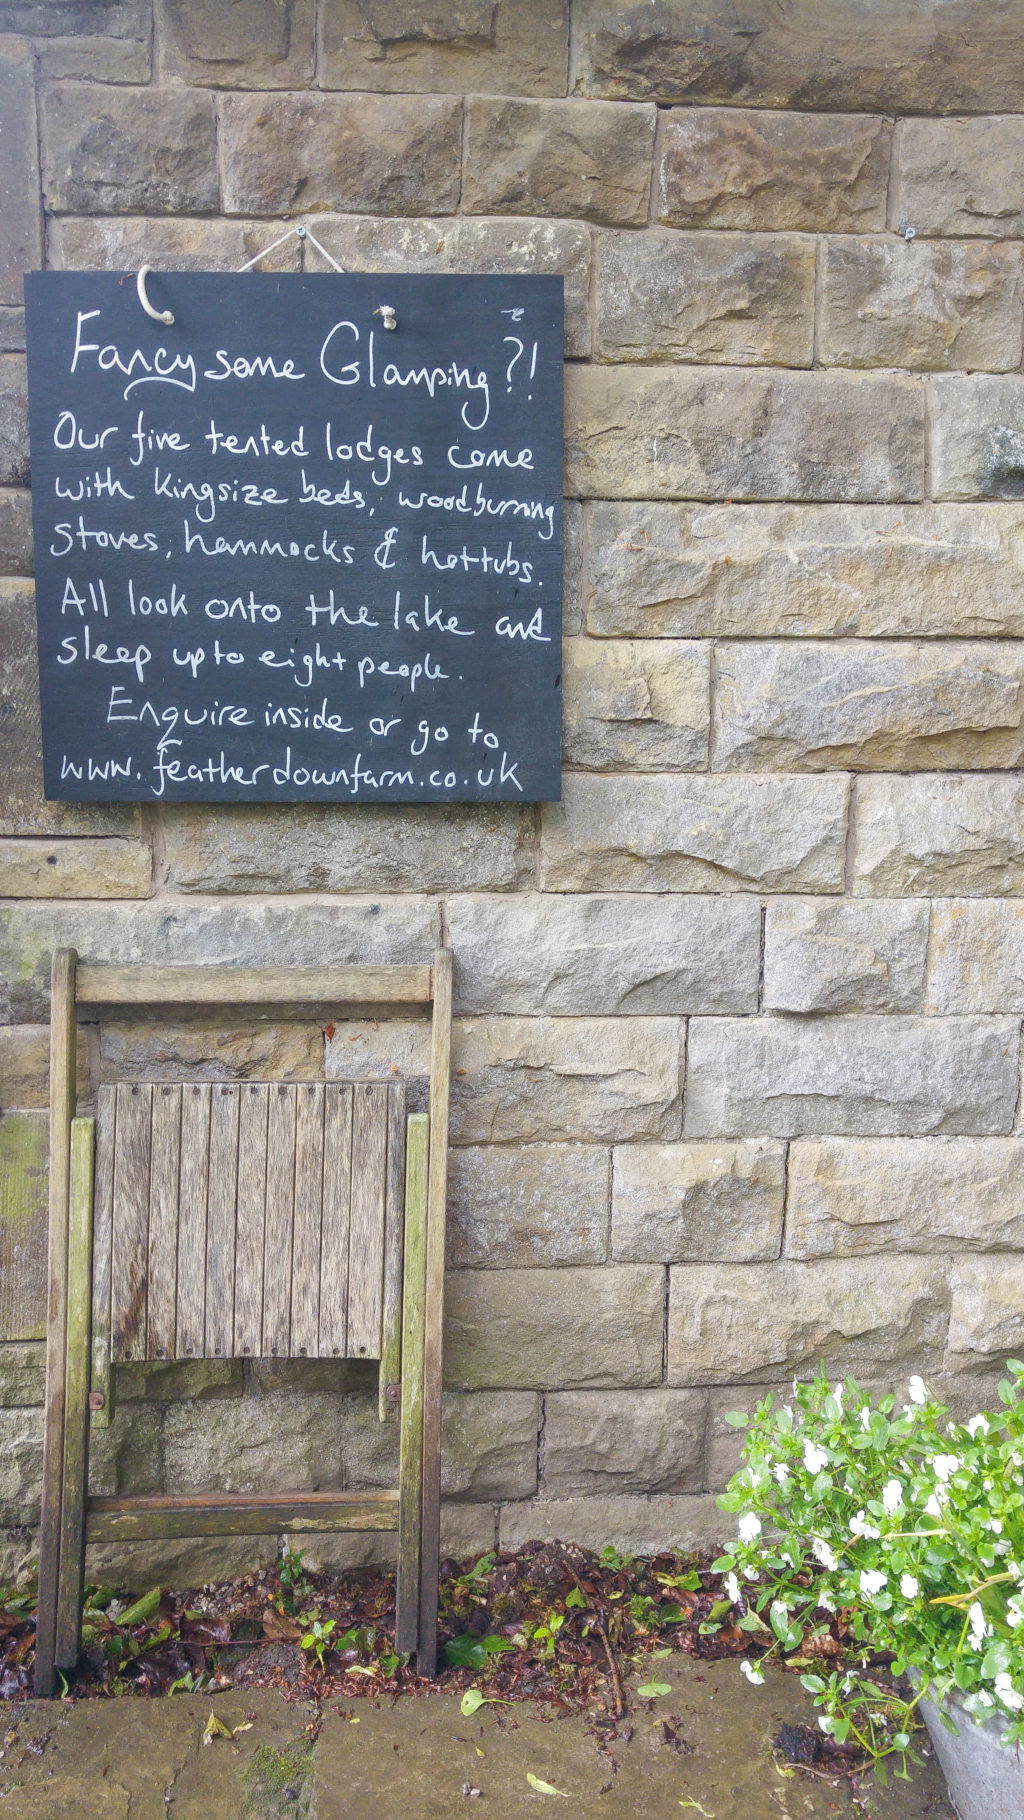 The Apple Store Cafe, Scorton, England. Travel Diary by Rosie Andre (cafe, food, countryside, UK, England, North of England, Food, Tea, Coffee, Cakes, Outdoors, Lake)